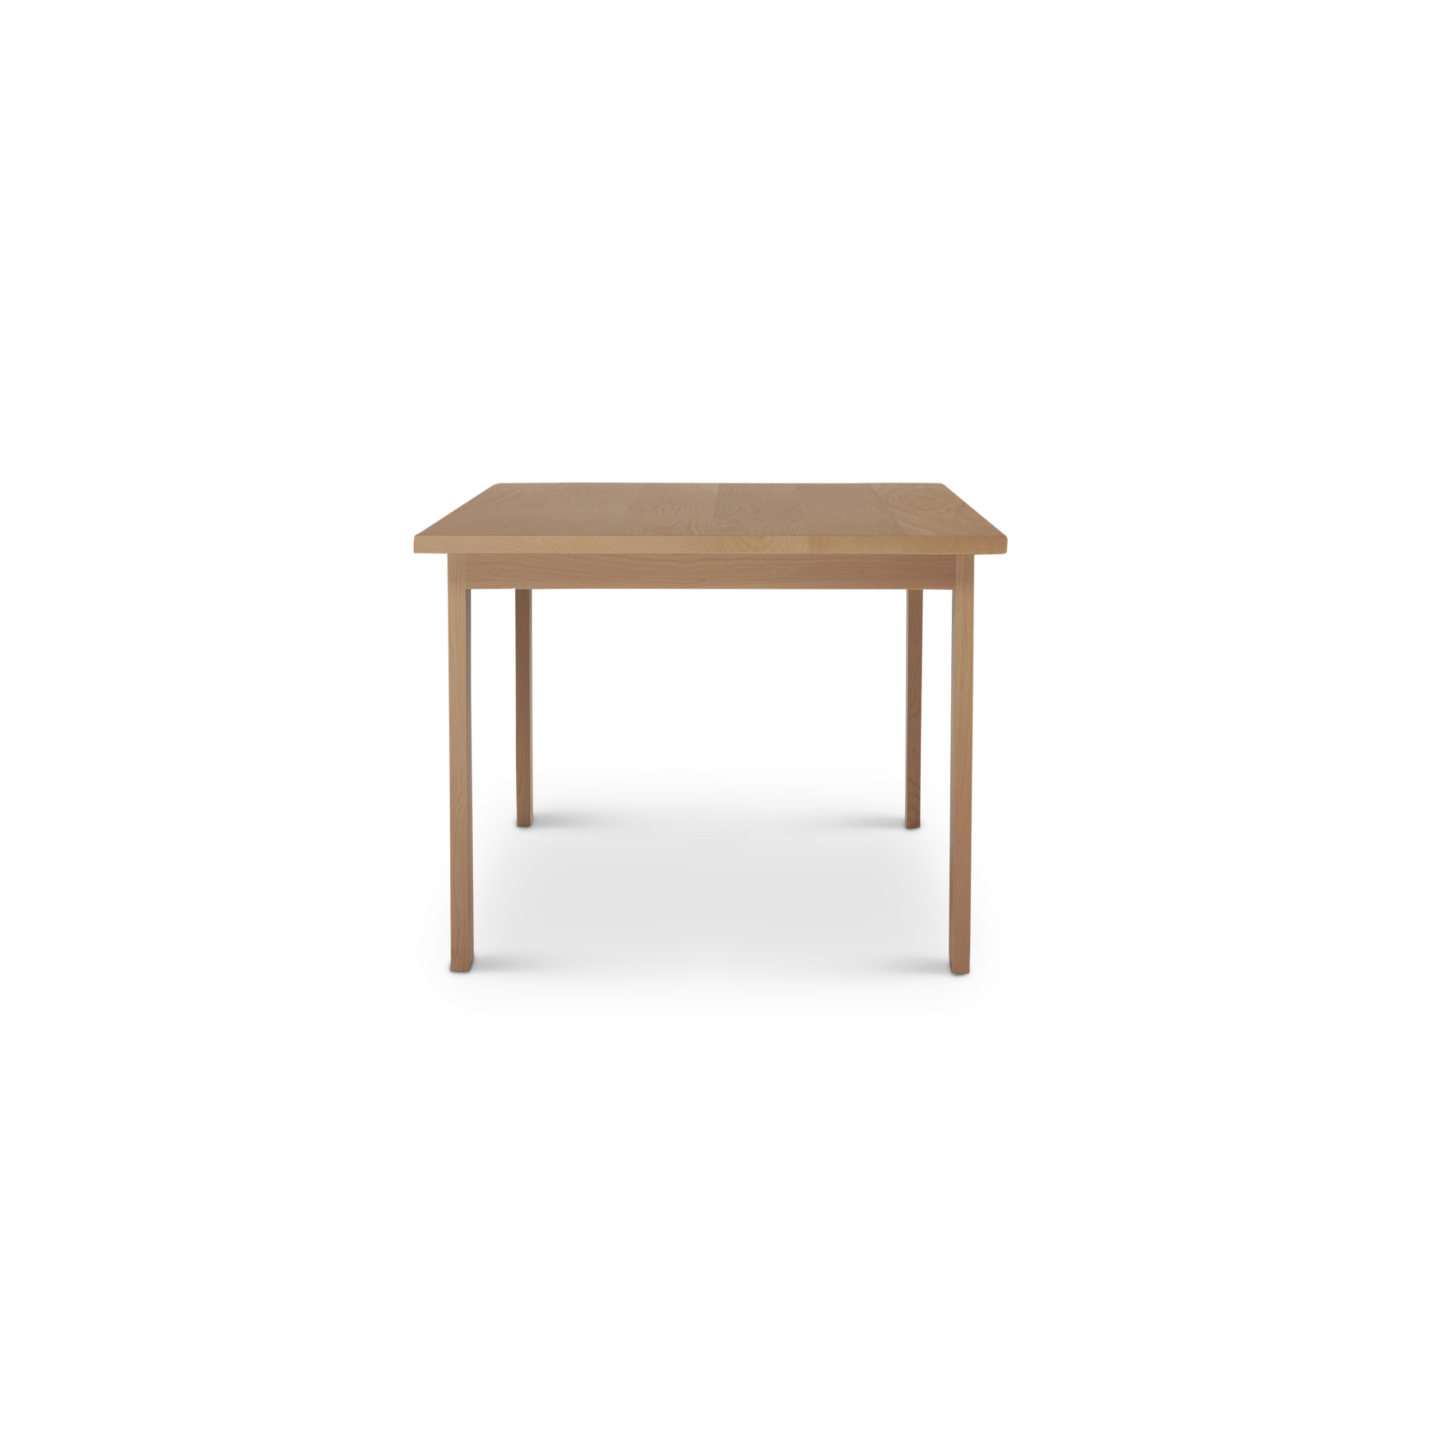 Modern Cherry Table made in Ohio